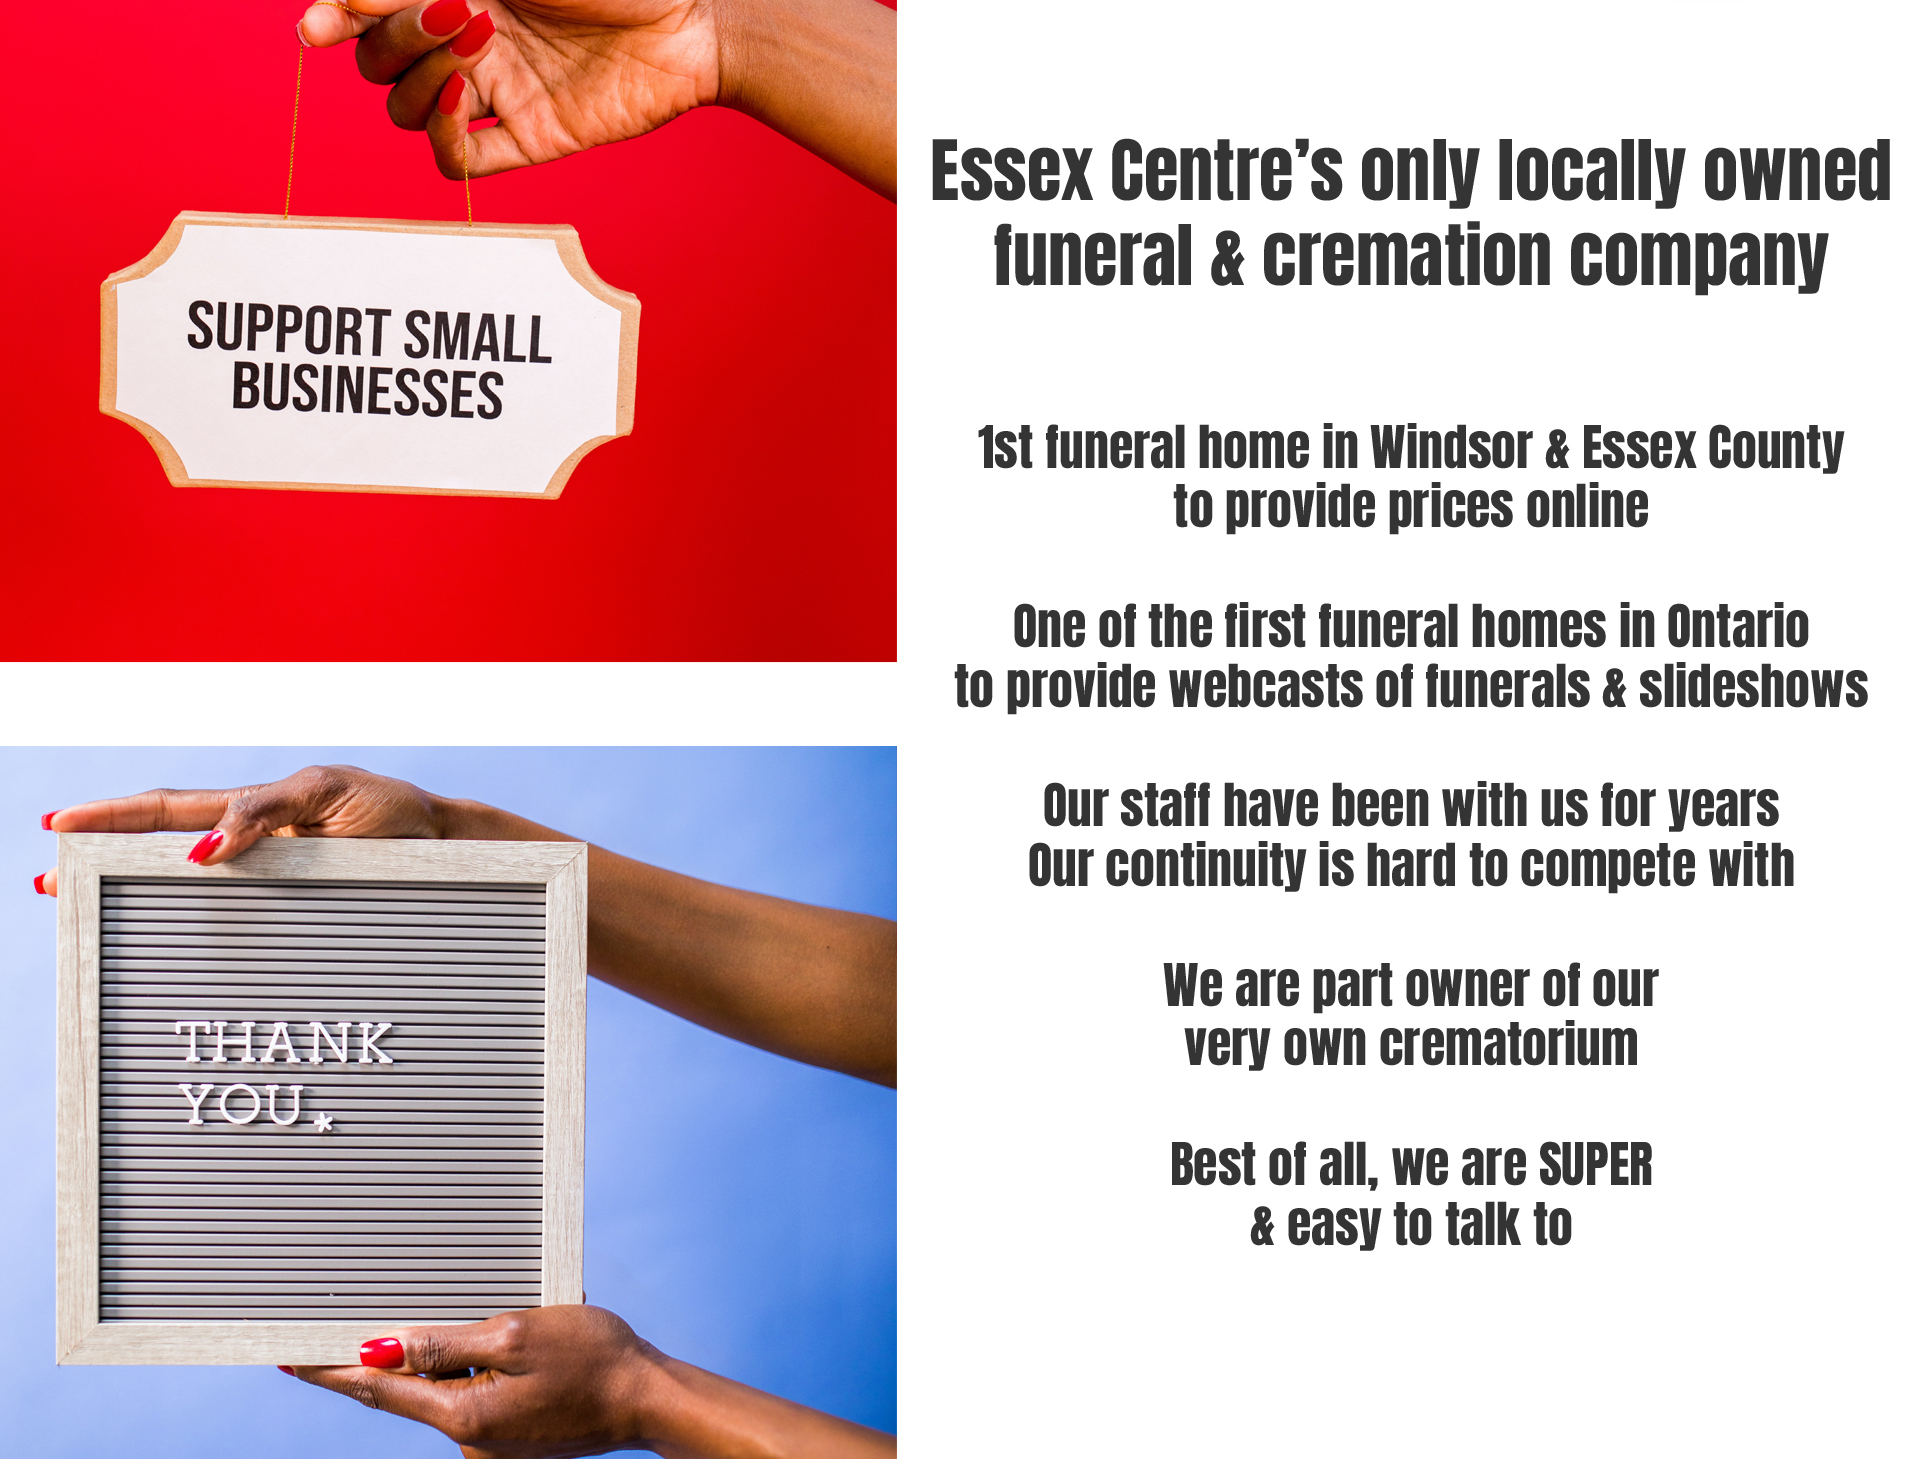 We are a local funeral and cremation service. We look forward to offering you fair prices and service.